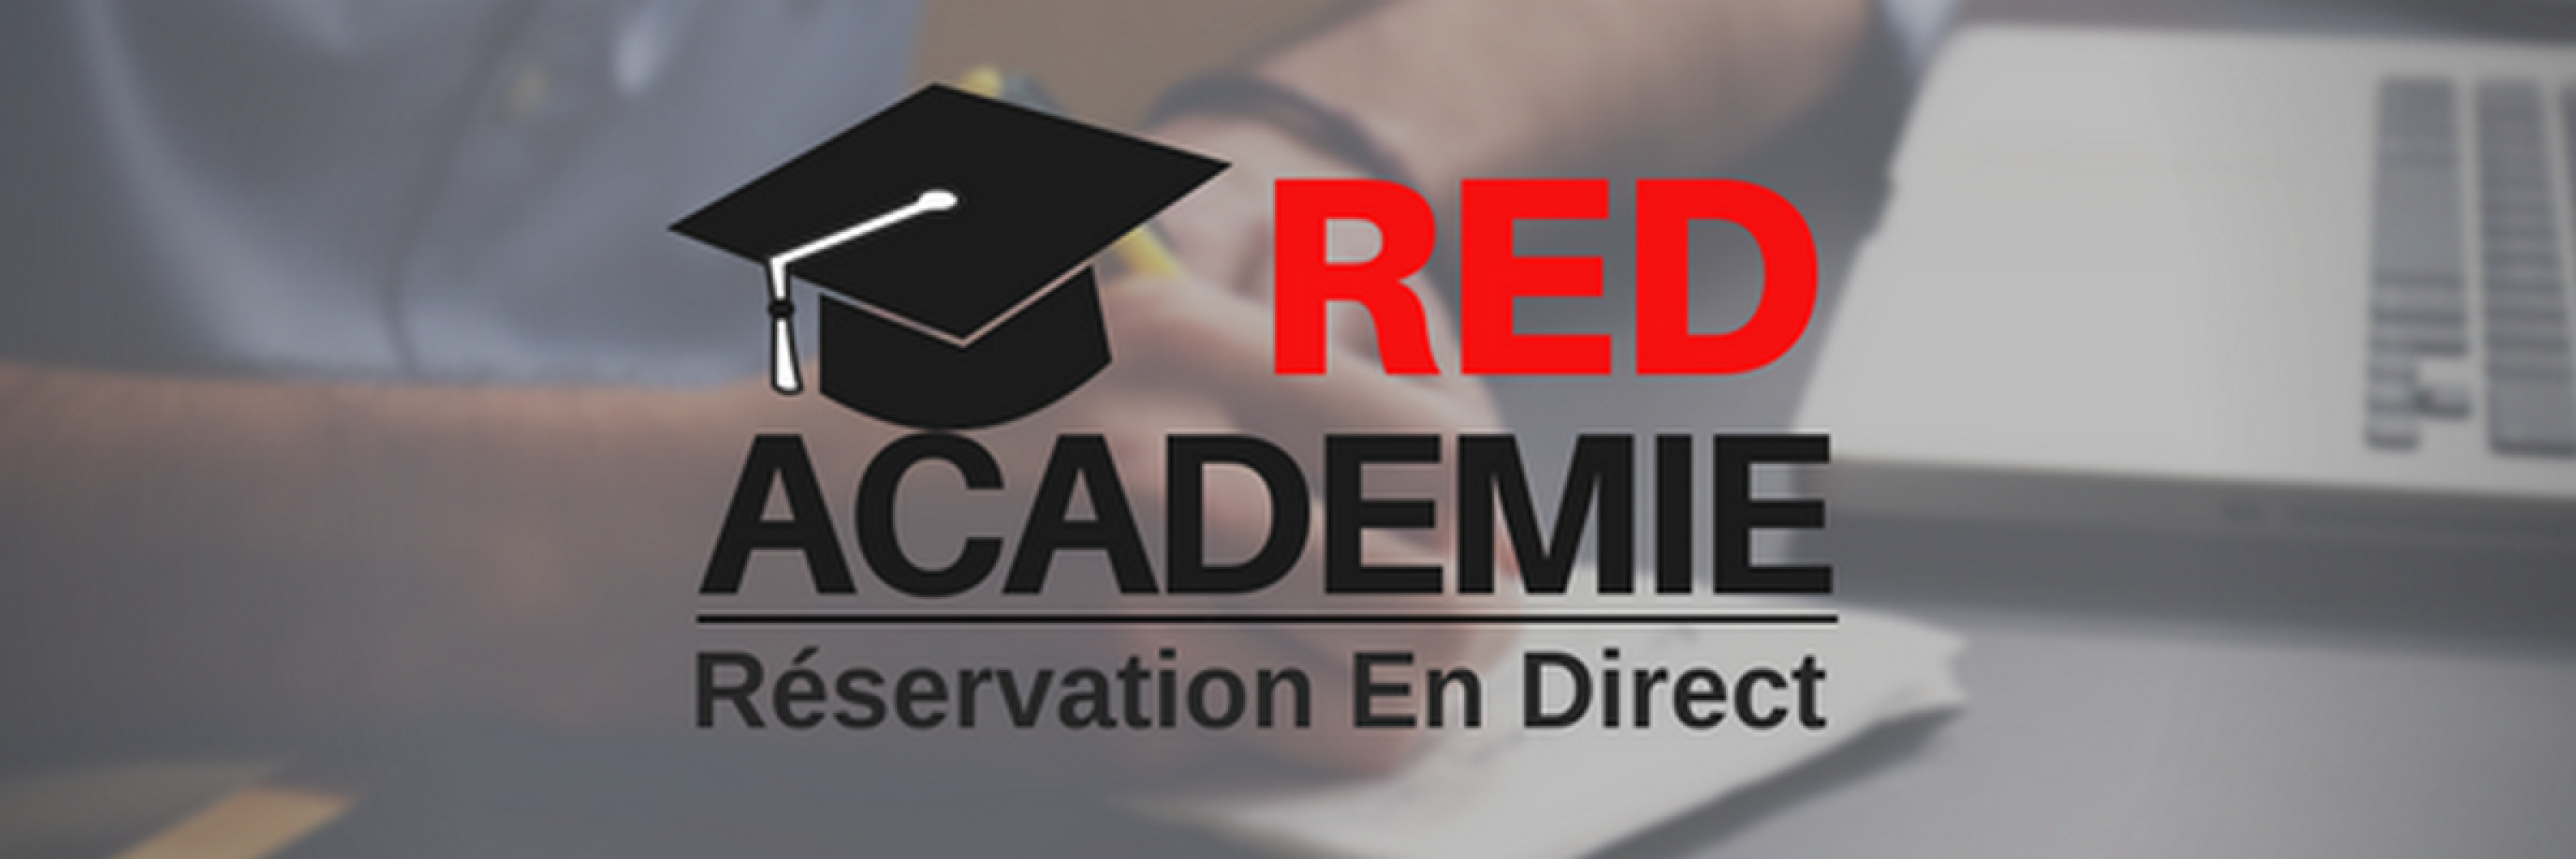 réservation en direct : centre de formation